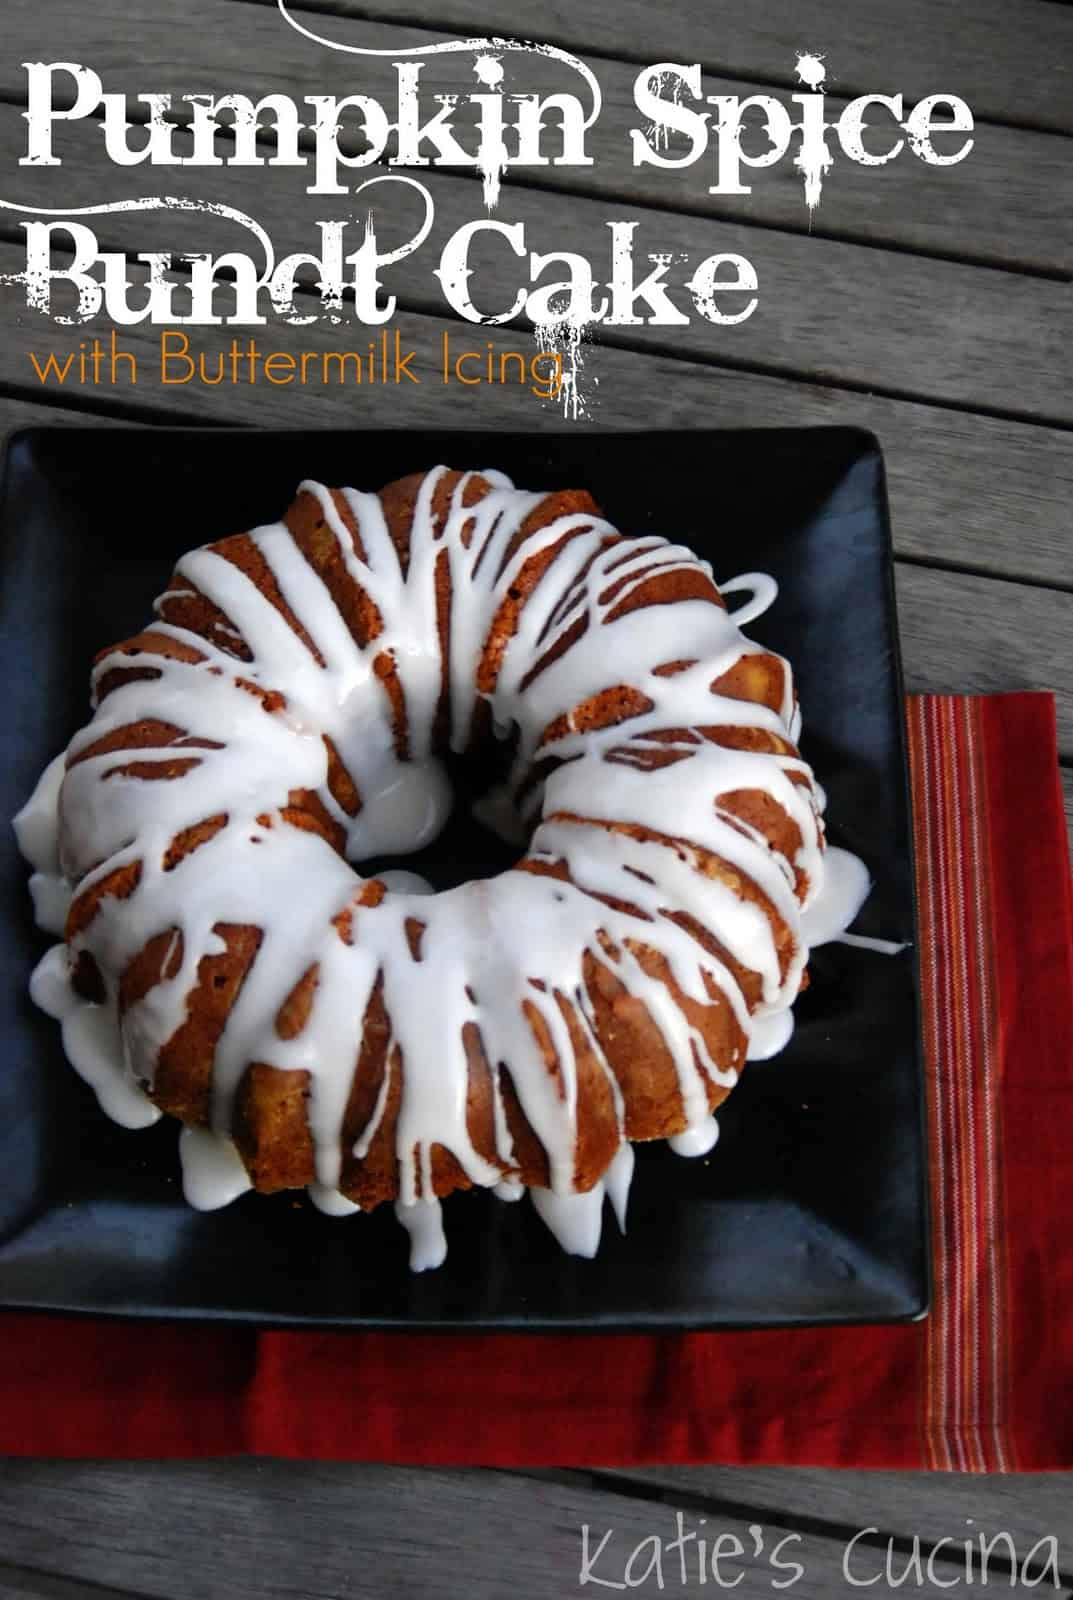 Pumpkin Spice Bundt Cake with Buttermilk Icing